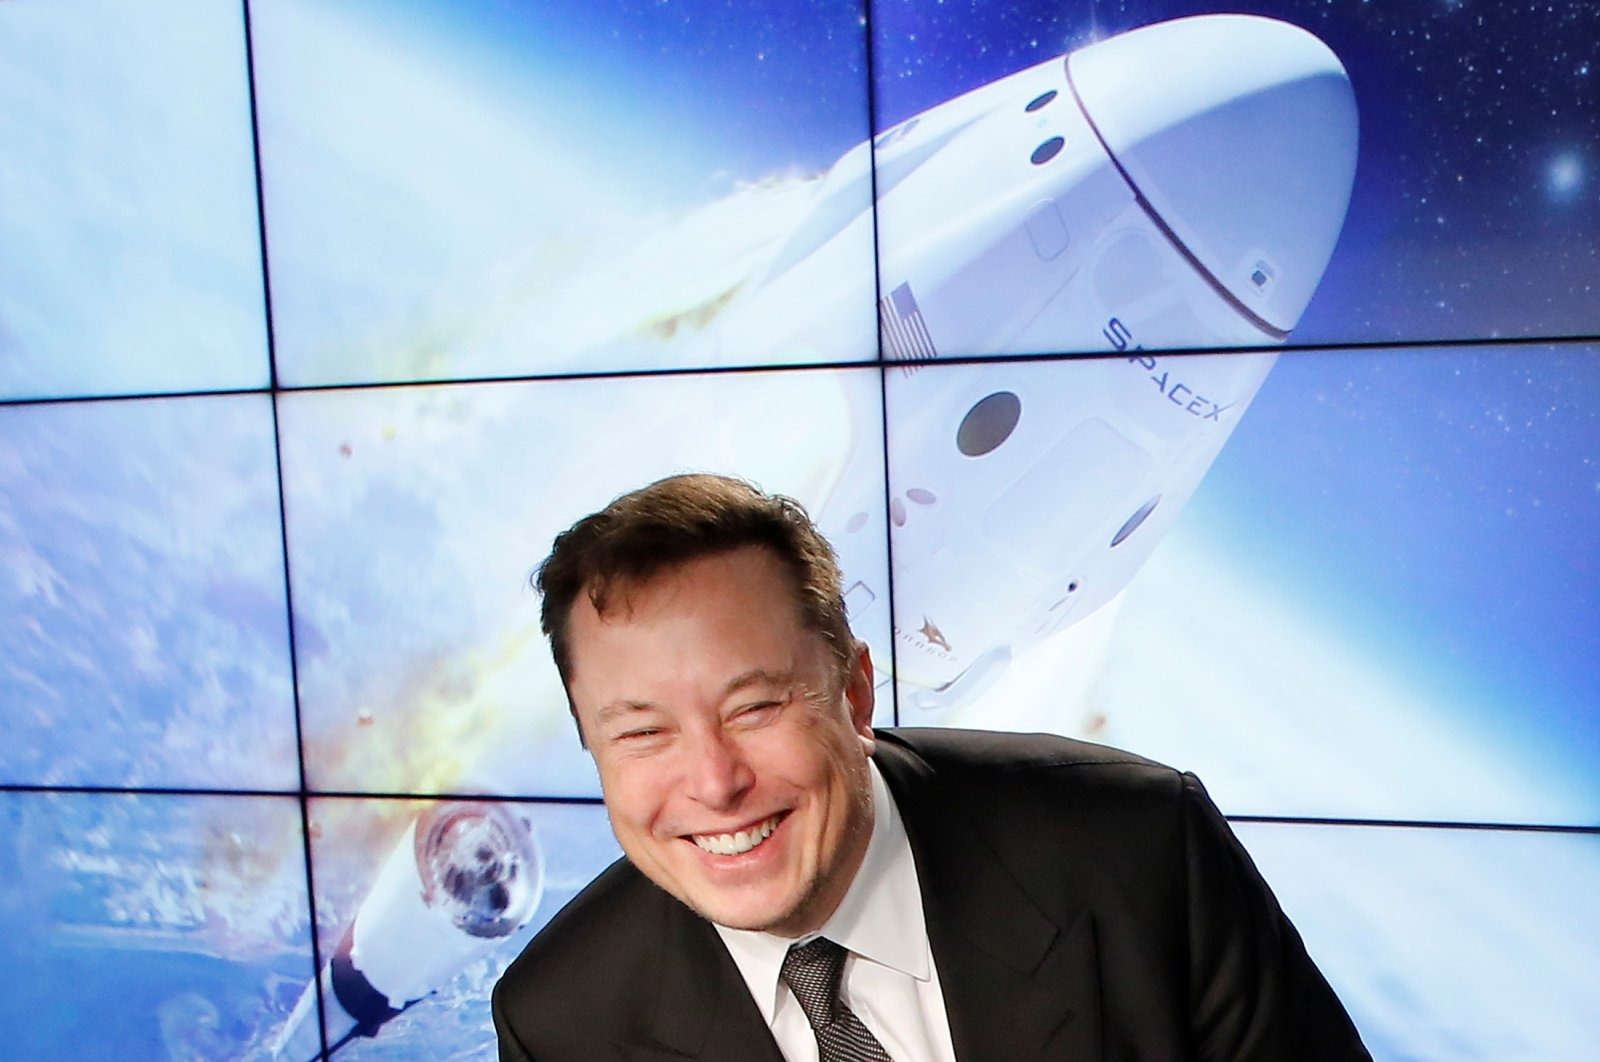 SpaceX founder Elon Musk reacts at a post-launch news conference to discuss the SpaceX Crew Dragon astronaut capsule in-flight abort test at the Kennedy Space Center in Cape Canaveral, Florida, U.S. Jan. 19, 2020. (Reuters File Photo)